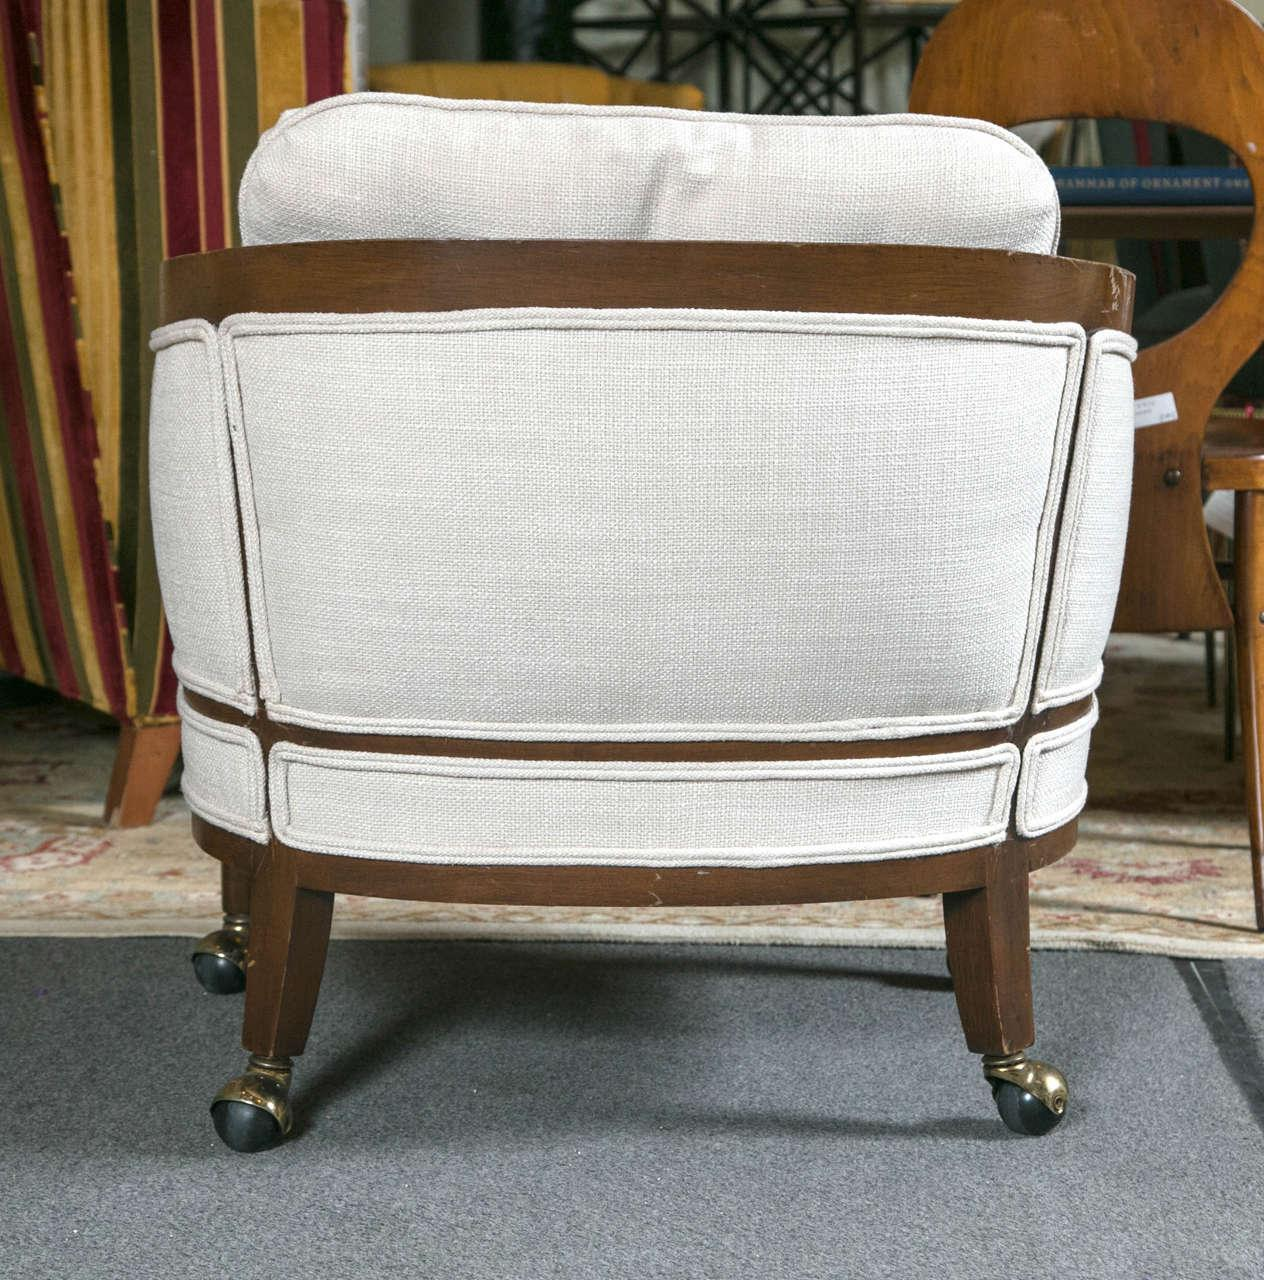 Marvelous Mid Century Club Chairs On Casters   A Pair   Image 8 Of 10